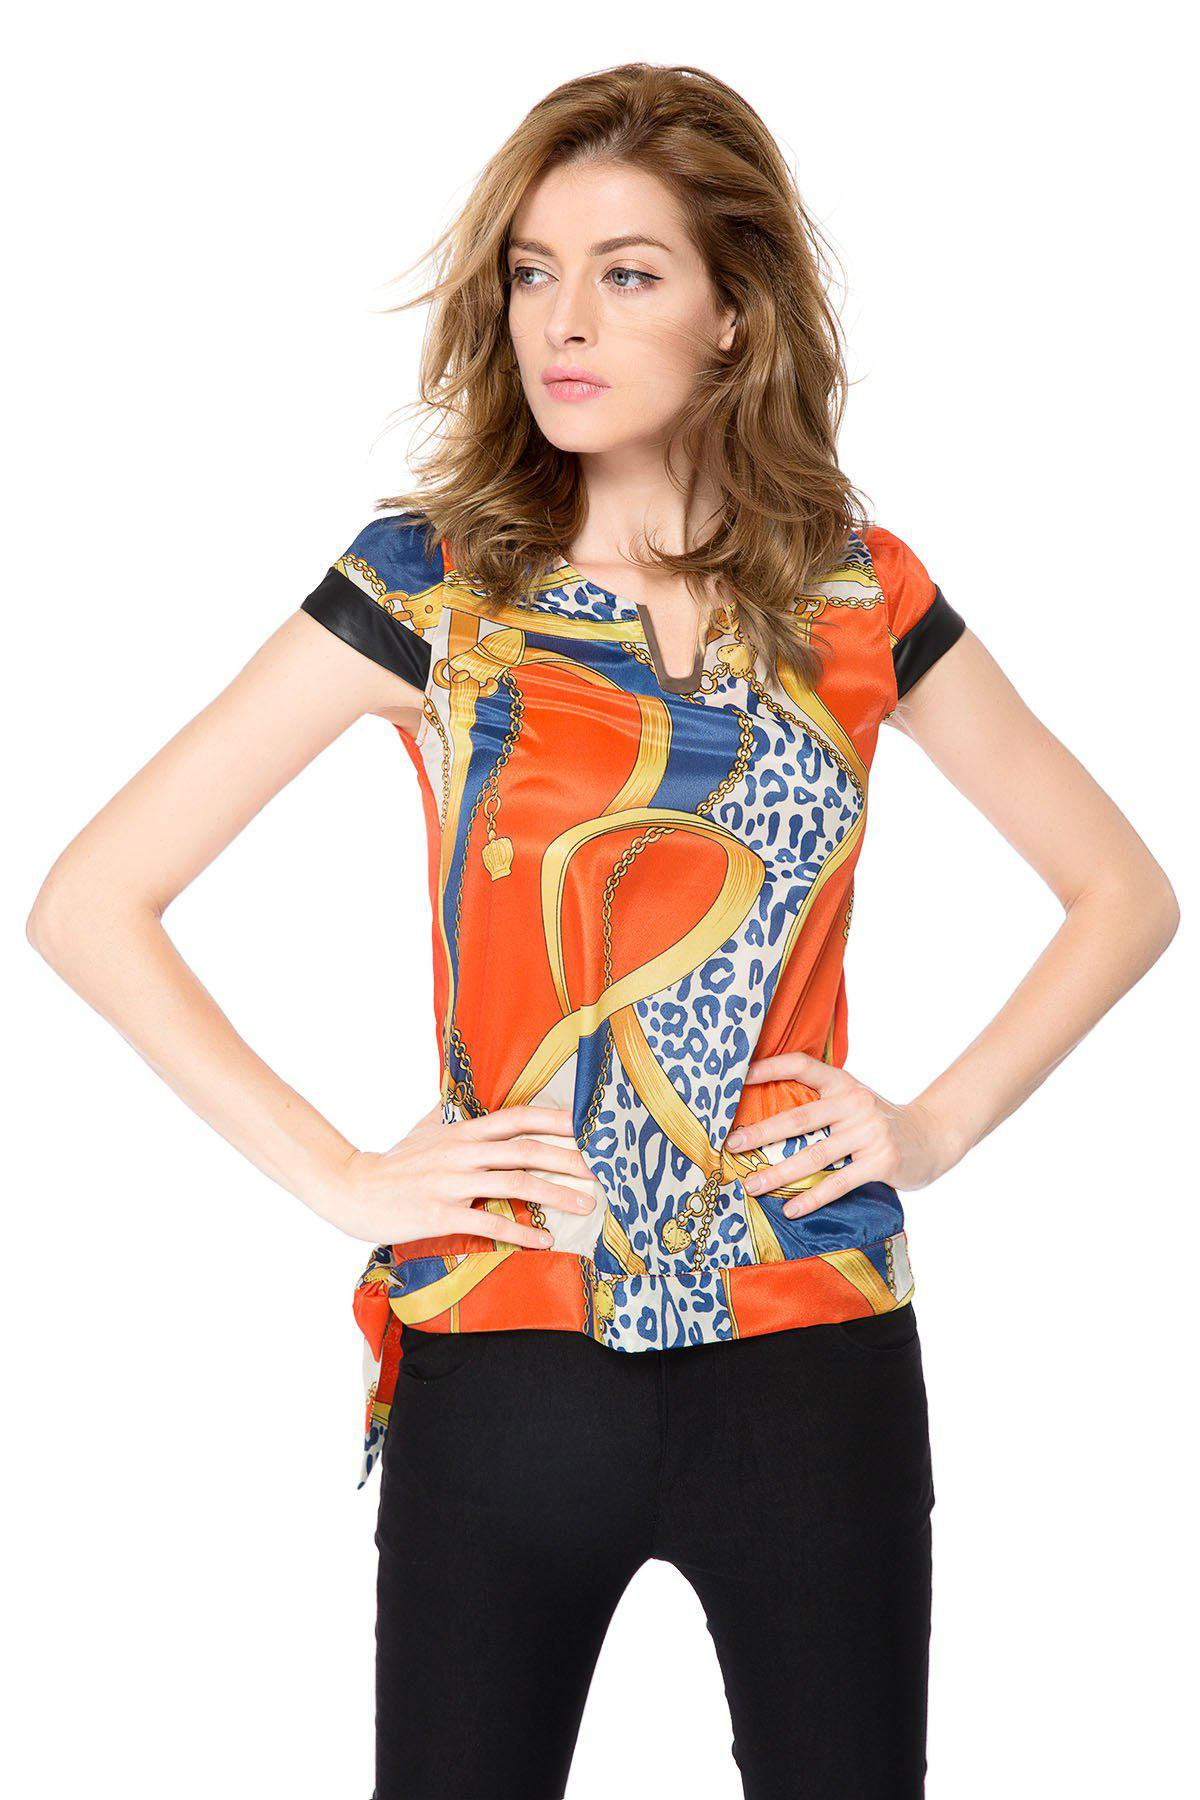 Women's Fashion Retro Printing Short Sleeve Chiffon Blouse - ORANGE L